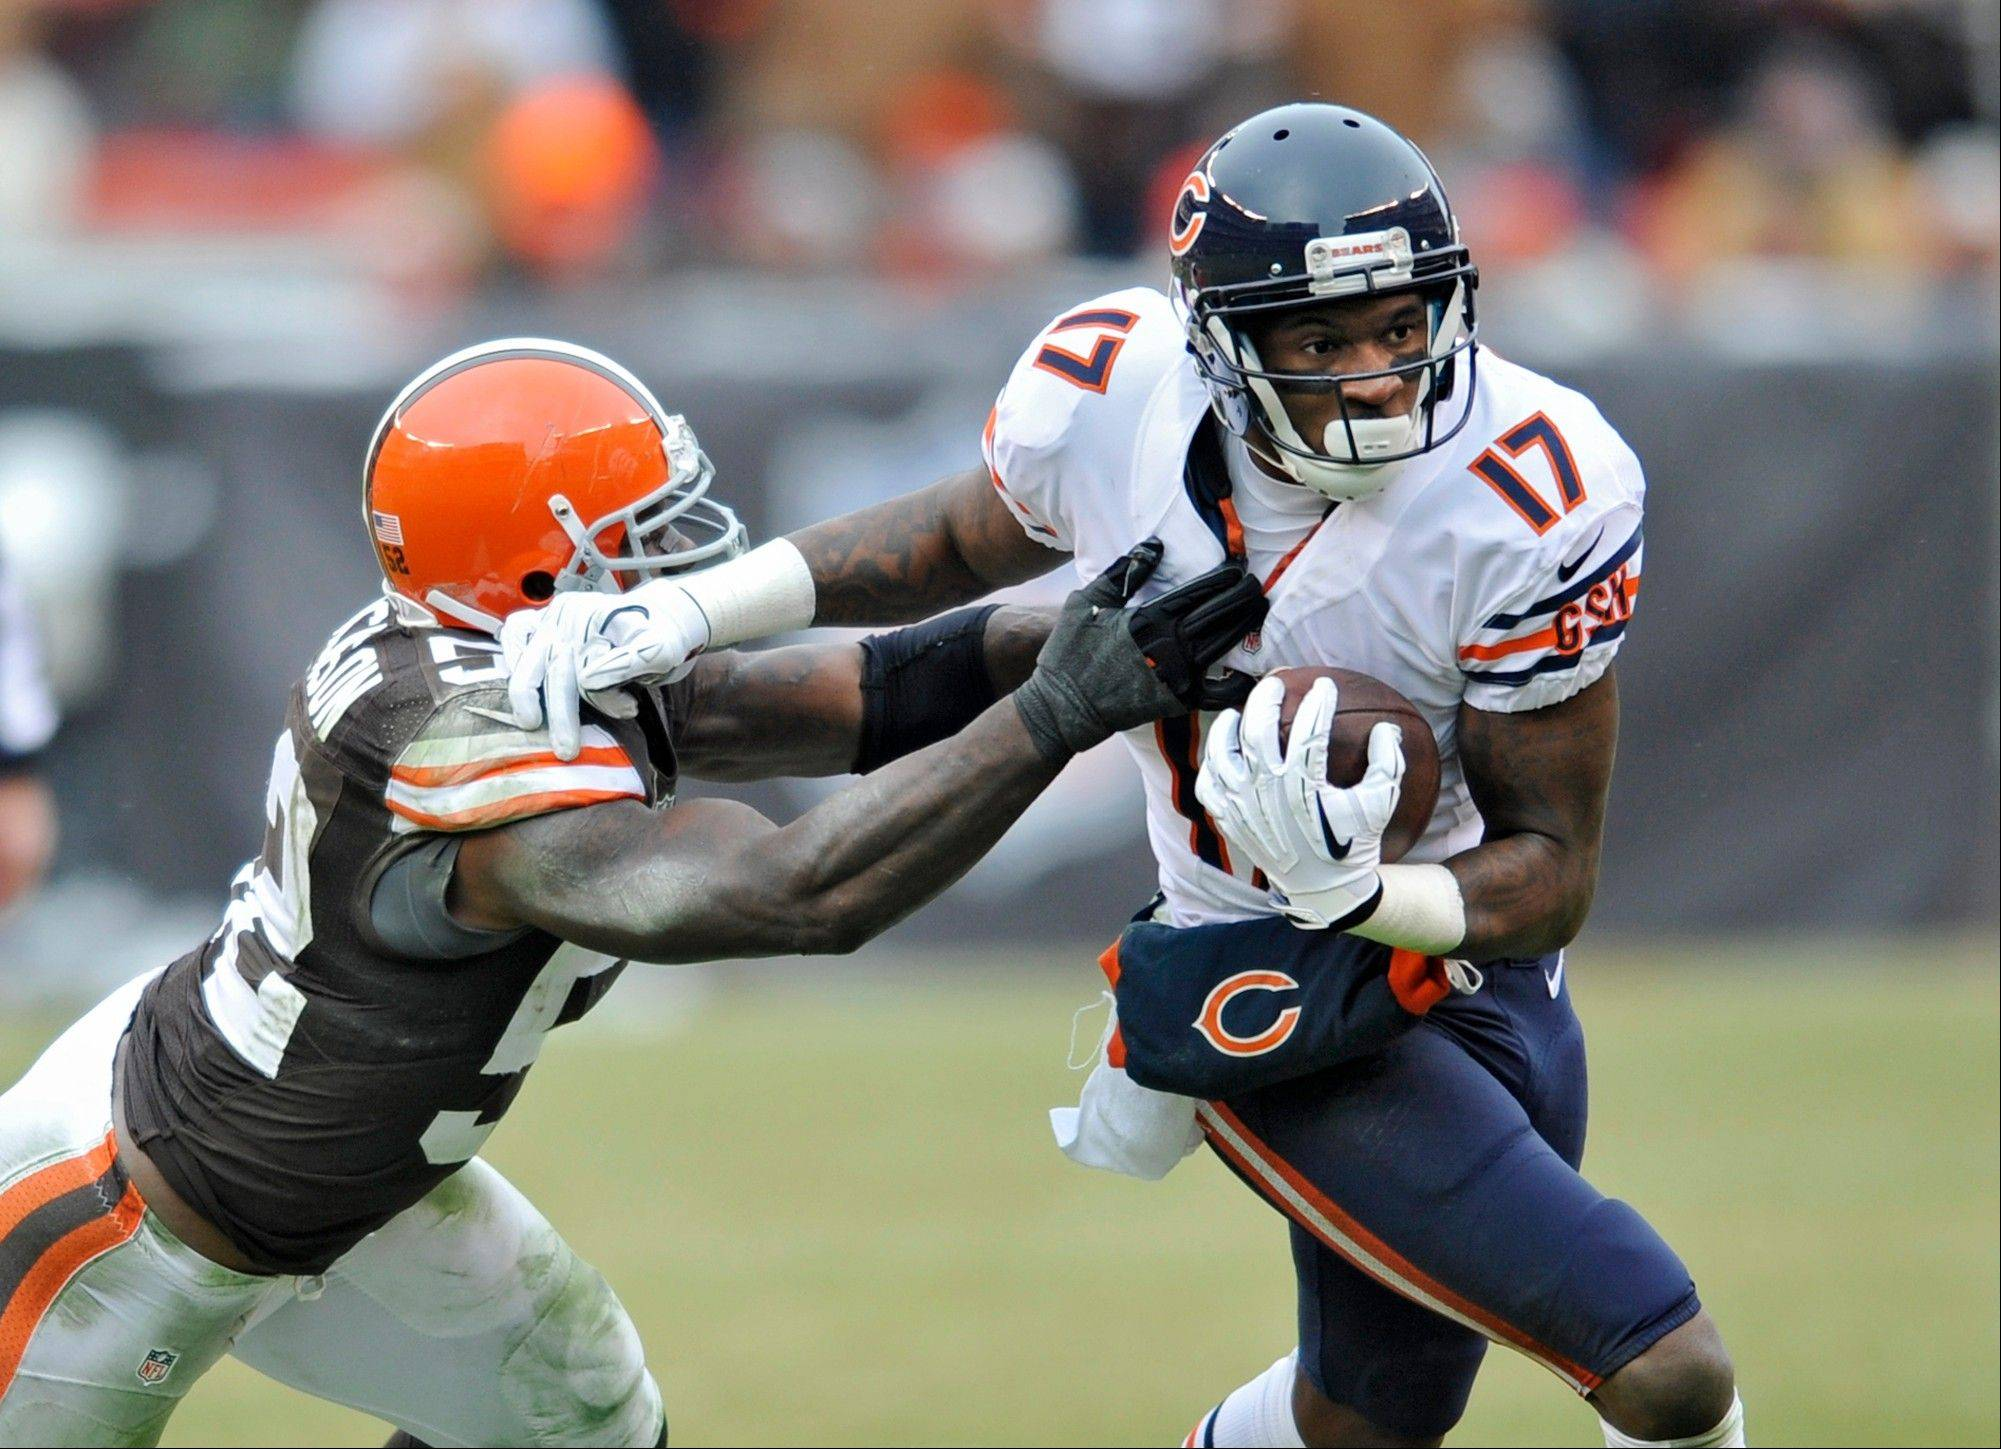 Bears wide receiver Alshon Jeffery (17) fights off Cleveland Browns inside linebacker D'Qwell Jackson after a catch in the second quarter of an NFL football game, Sunday, Dec. 15, 2013, in Cleveland.